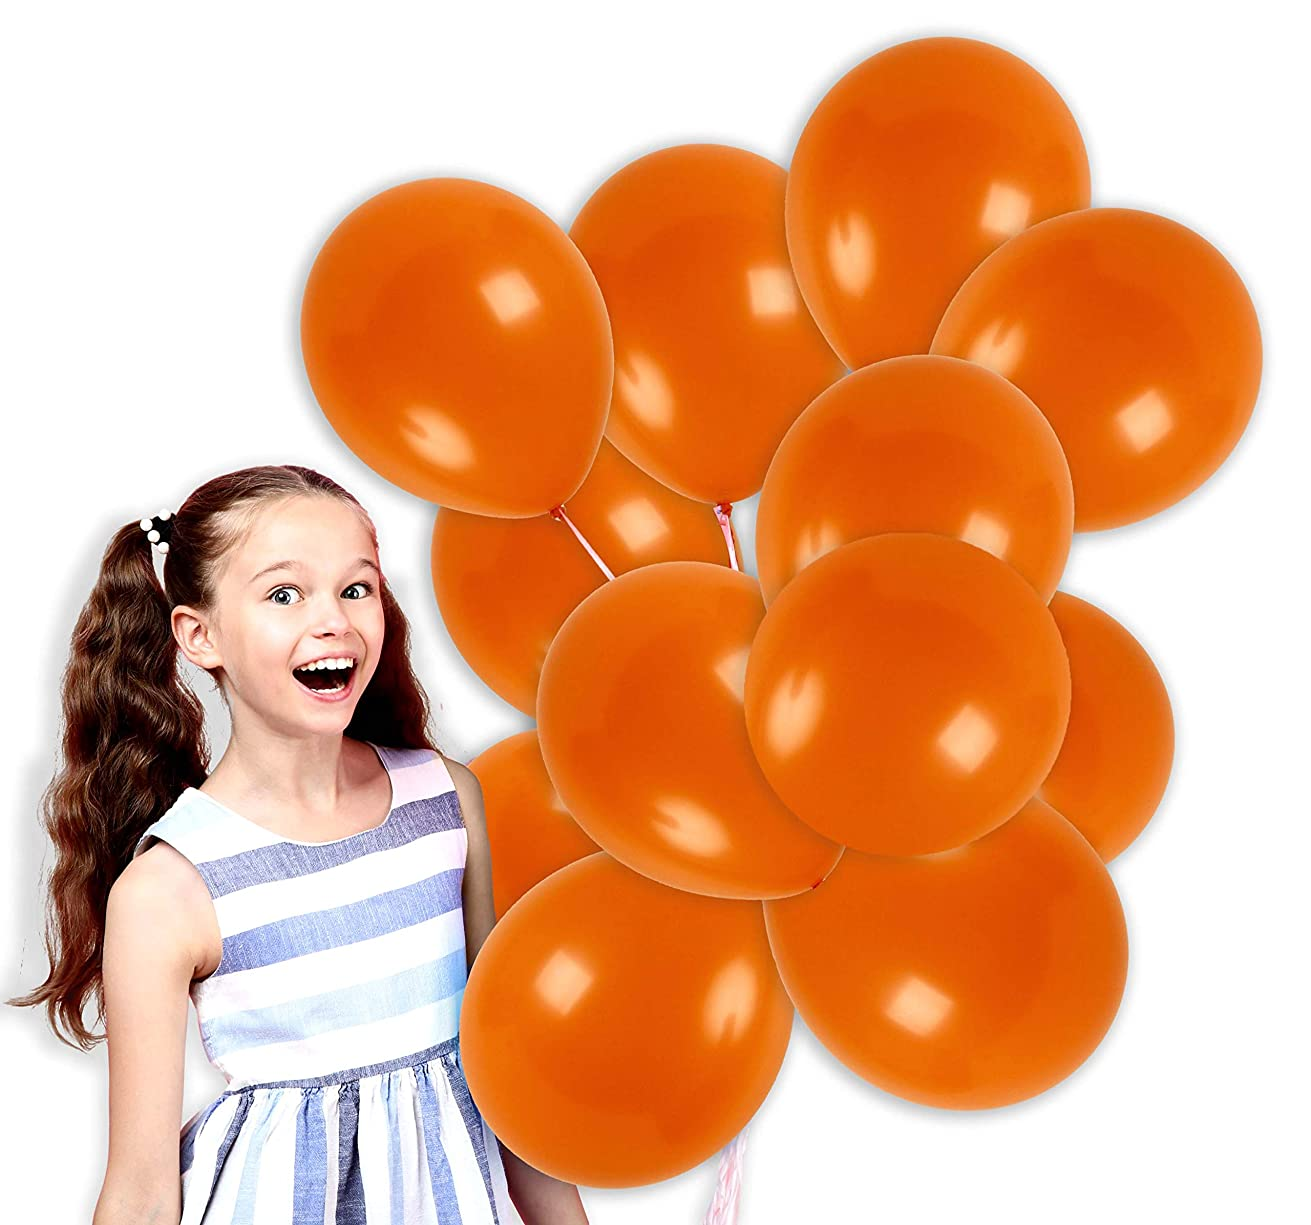 Treasures Gifted 12 Inch Orange Solid Latex Balloons Premium Quality Bouquet for Halloween Rainbow Tropical Island Spring Circus Birthday Party Supplies (100 Pack)